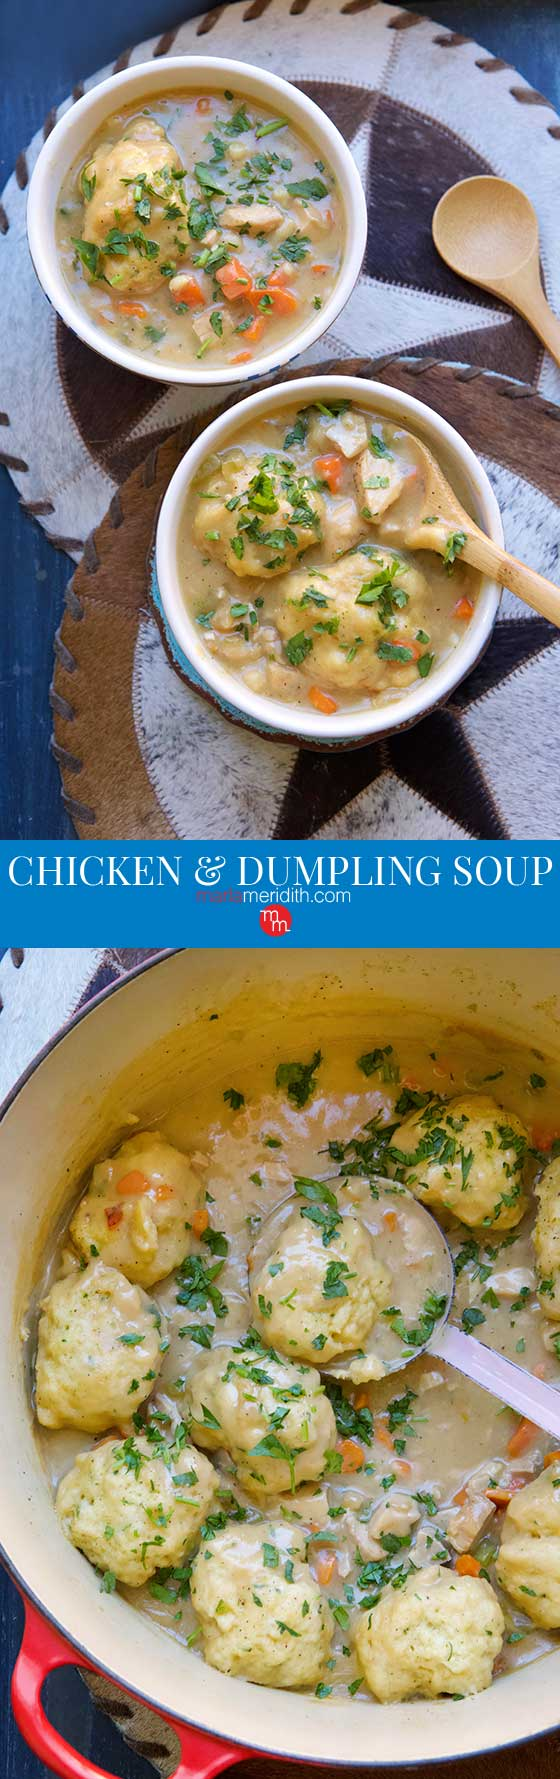 The MOST DELICIOUS Chicken & Dumpling Soup recipe you will ever eat! The perfect way to warm up on a chilly fall or winters day. MarlaMeridith.com